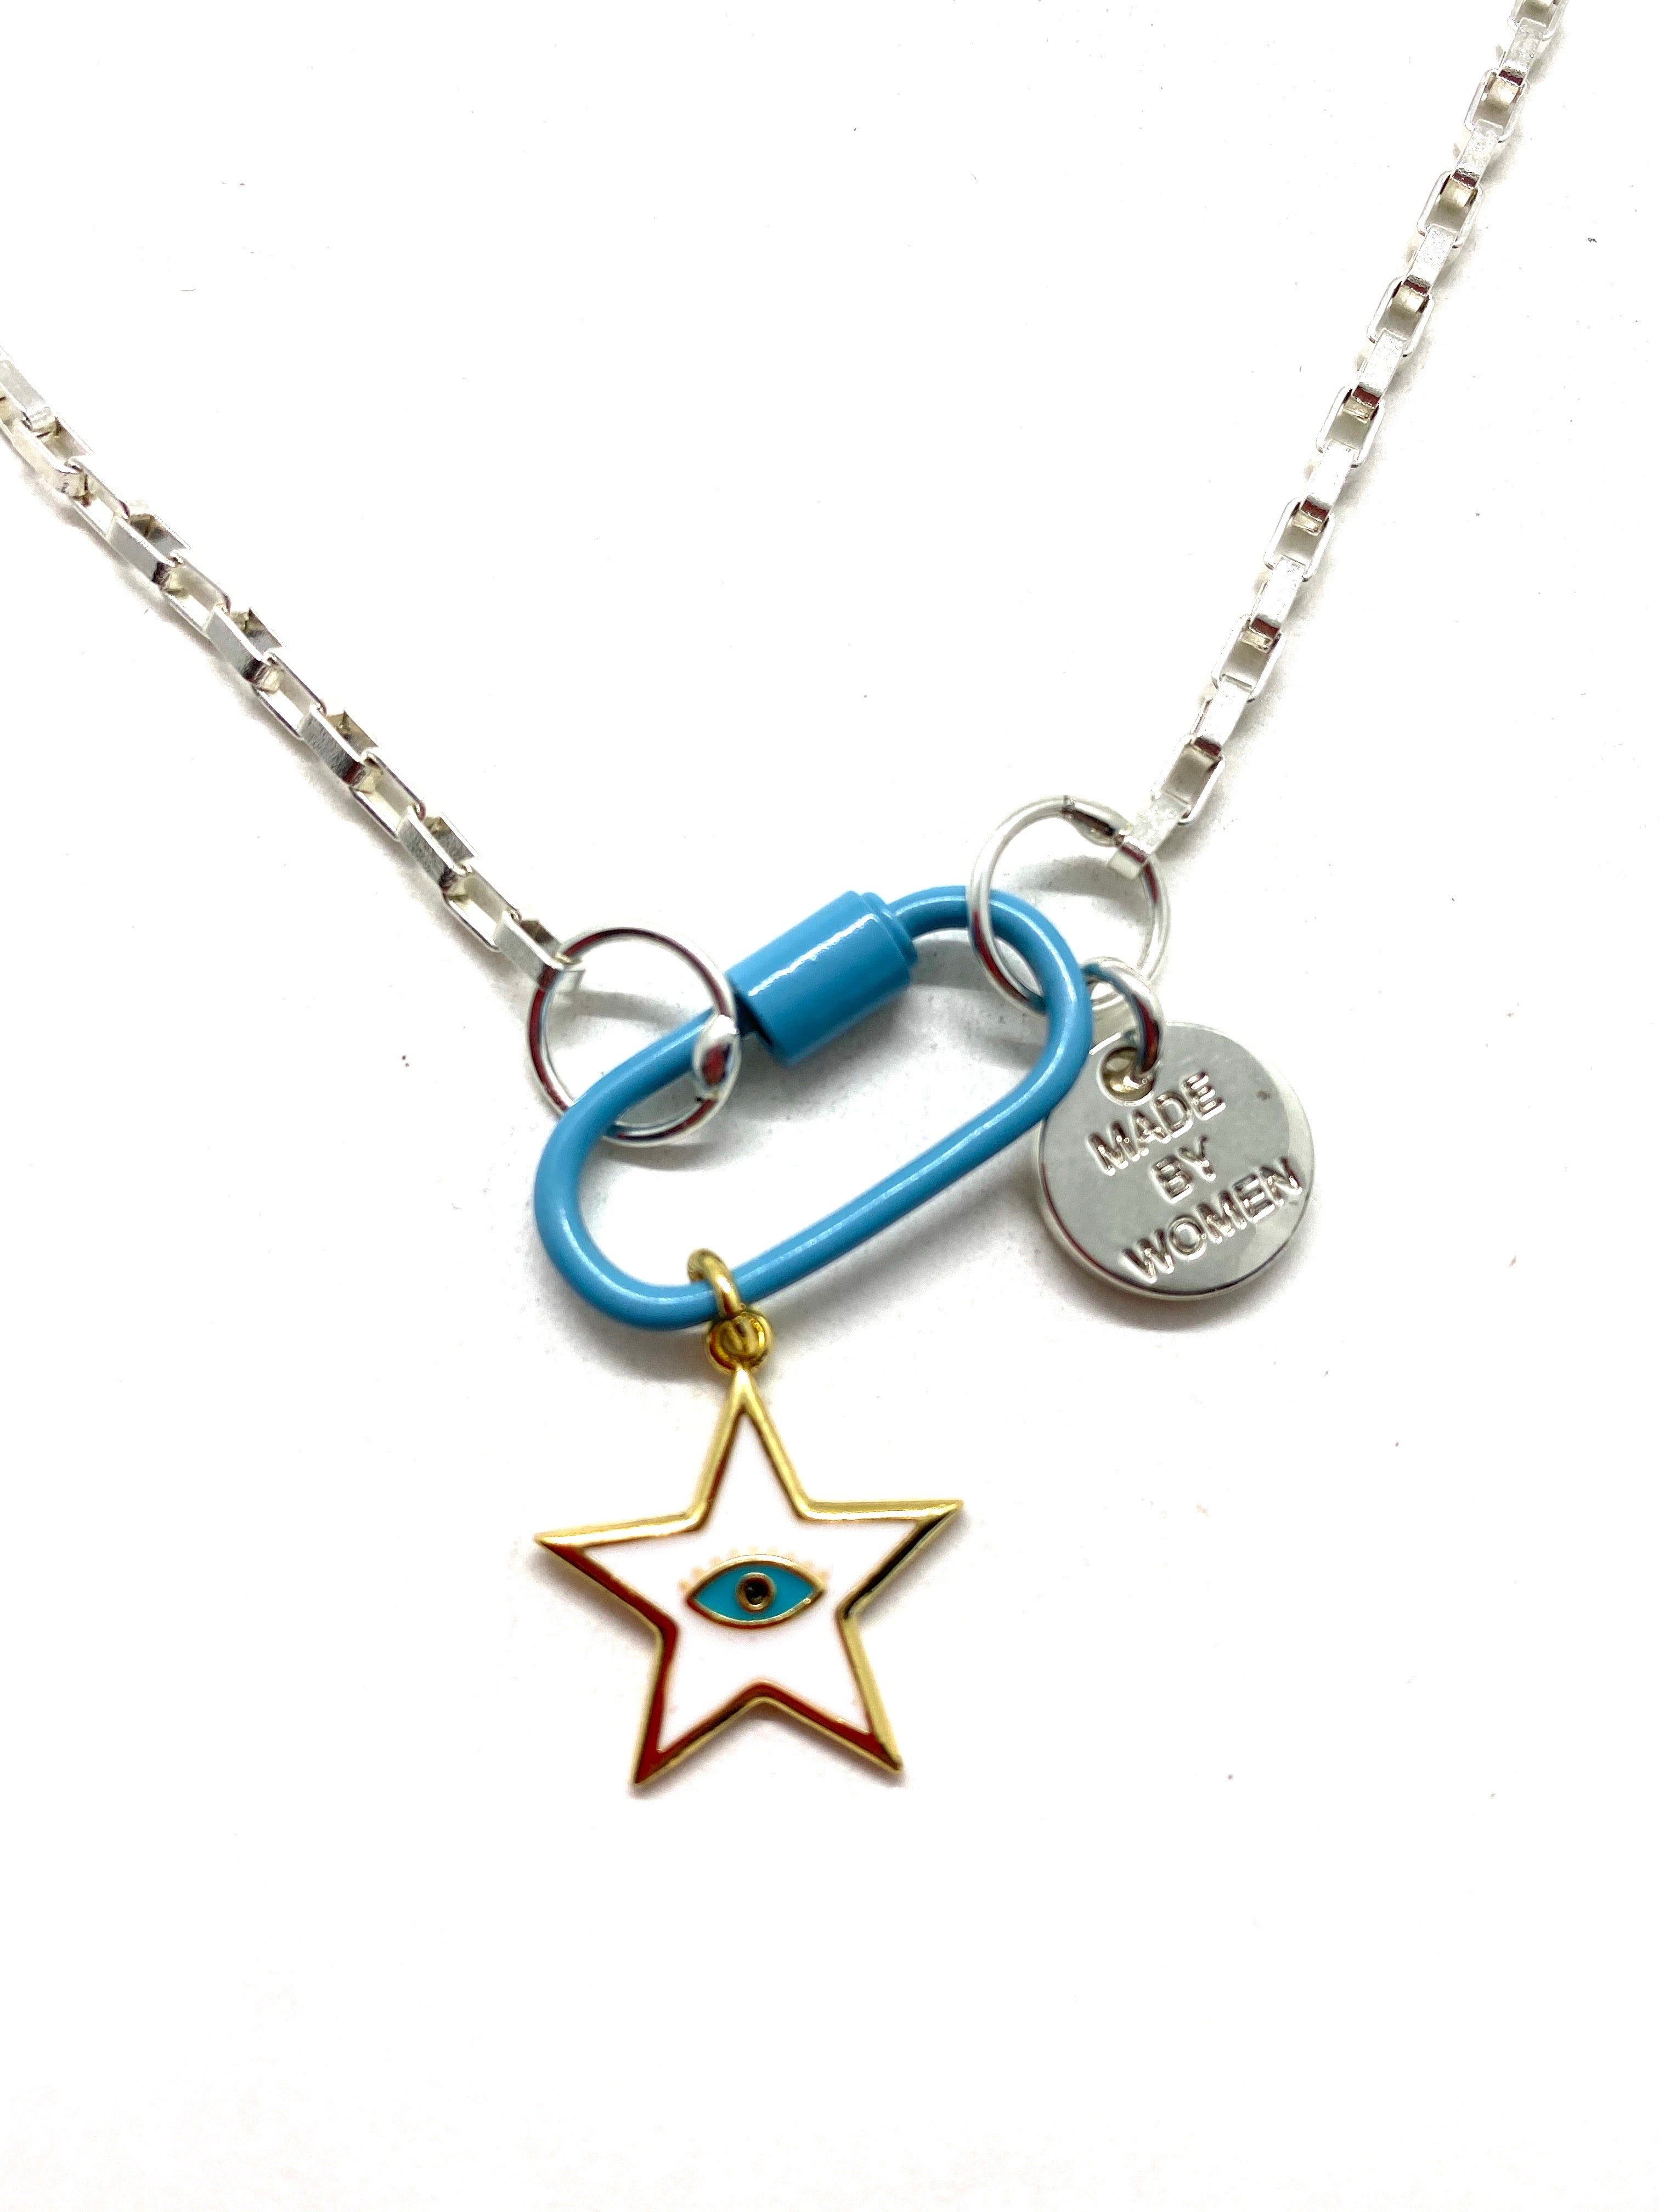 Blue hardware link silver chain